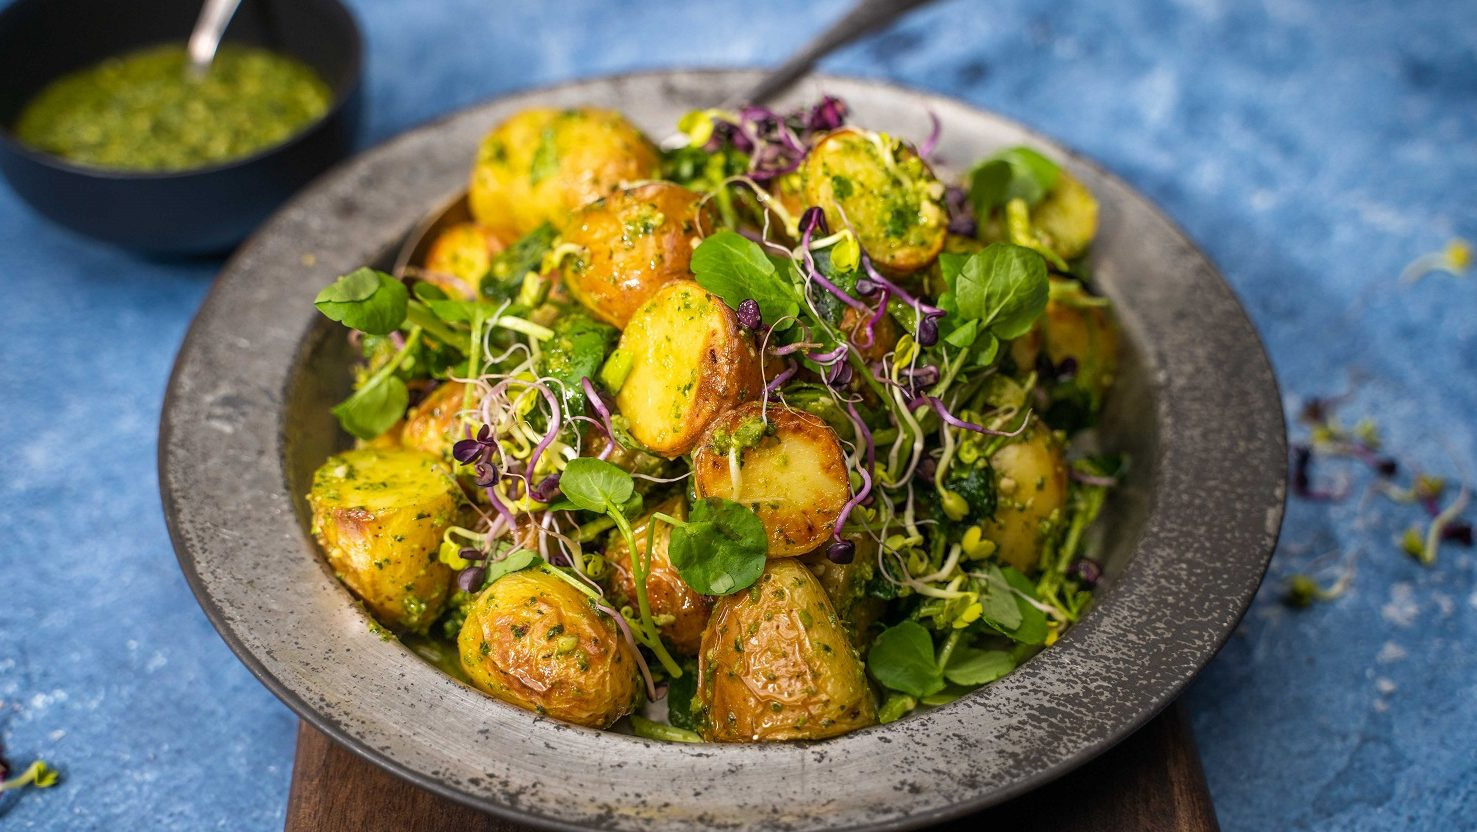 A heap of potato, micro shoots and greens salad on a metal plate with a black bowl of green sauce on blue table.